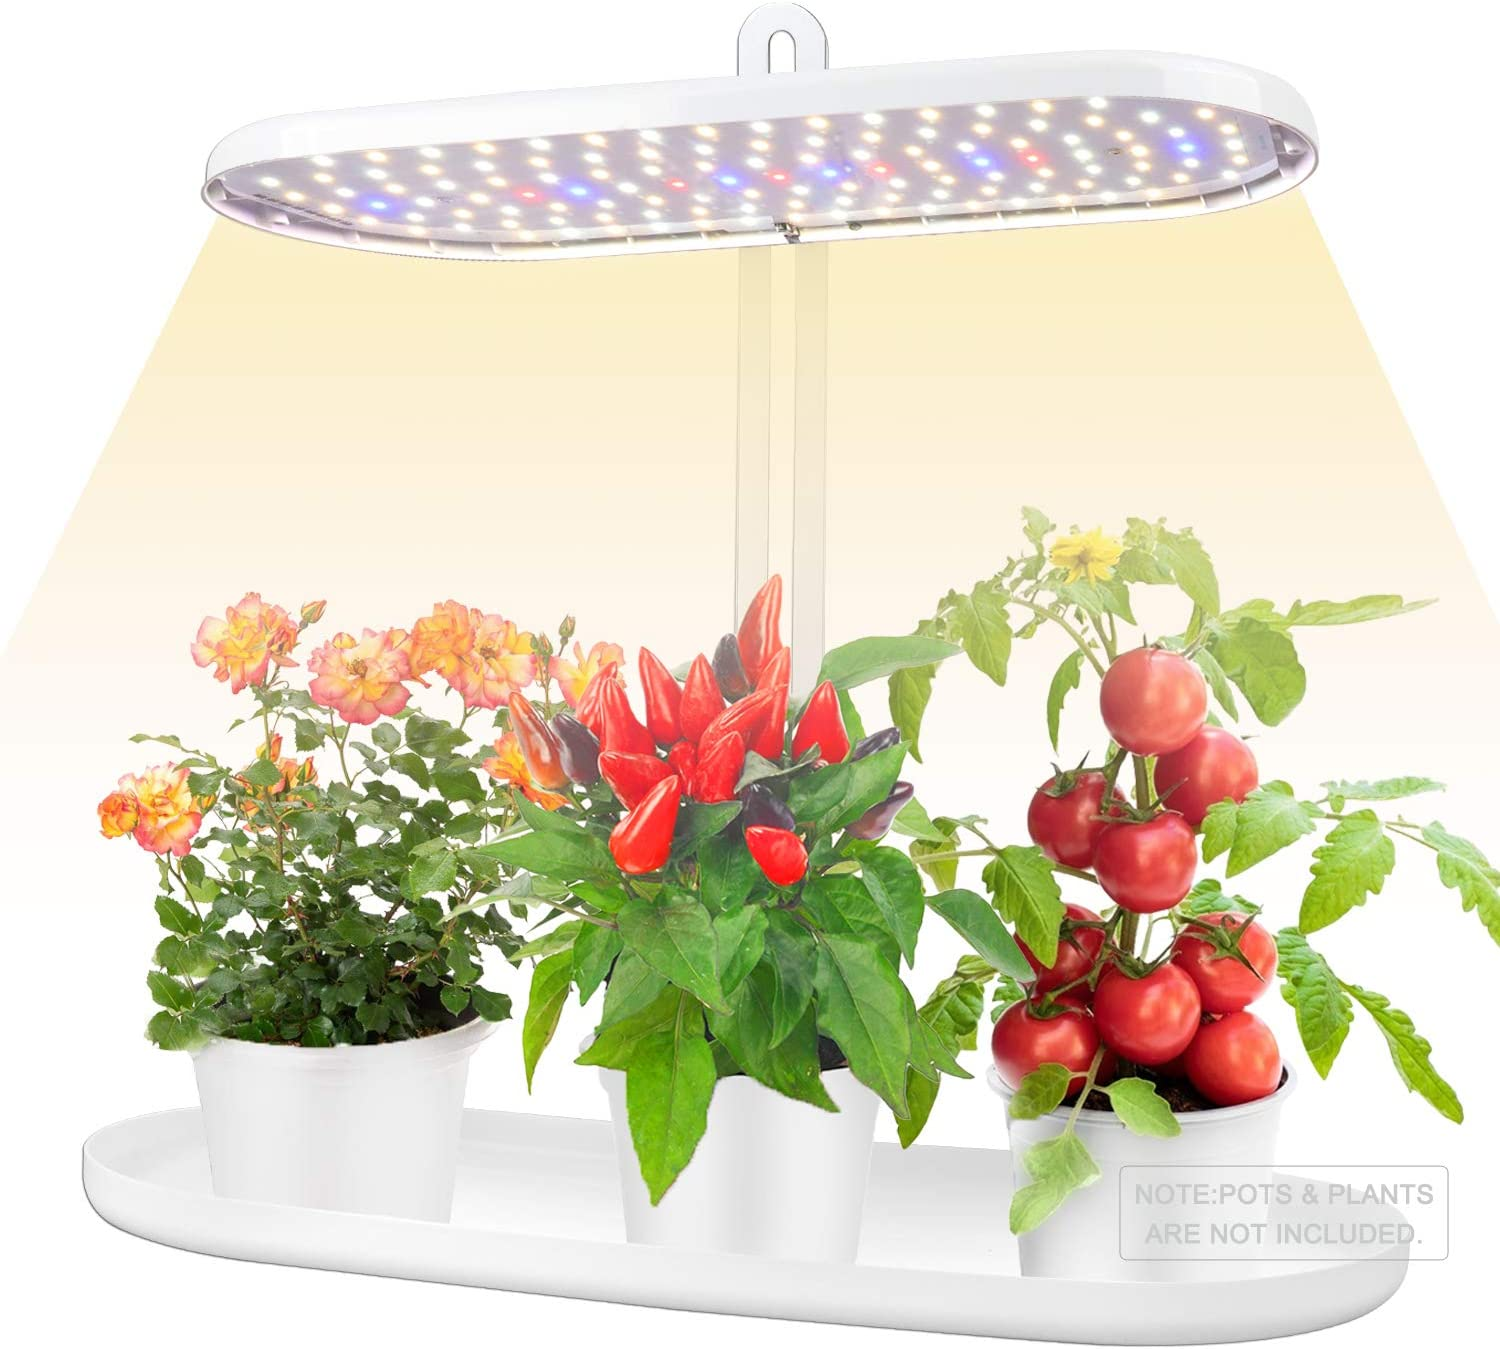 LVJING Indoor Garden Kit, Herb Garden LED Grow Light, 4 Dimmable Levels Indoor Herb Growing Kit, 3 Timing Modes Plant Lights, 12V Low Voltage and Height Adjustable Plant Growing Lights Fixtures Stand